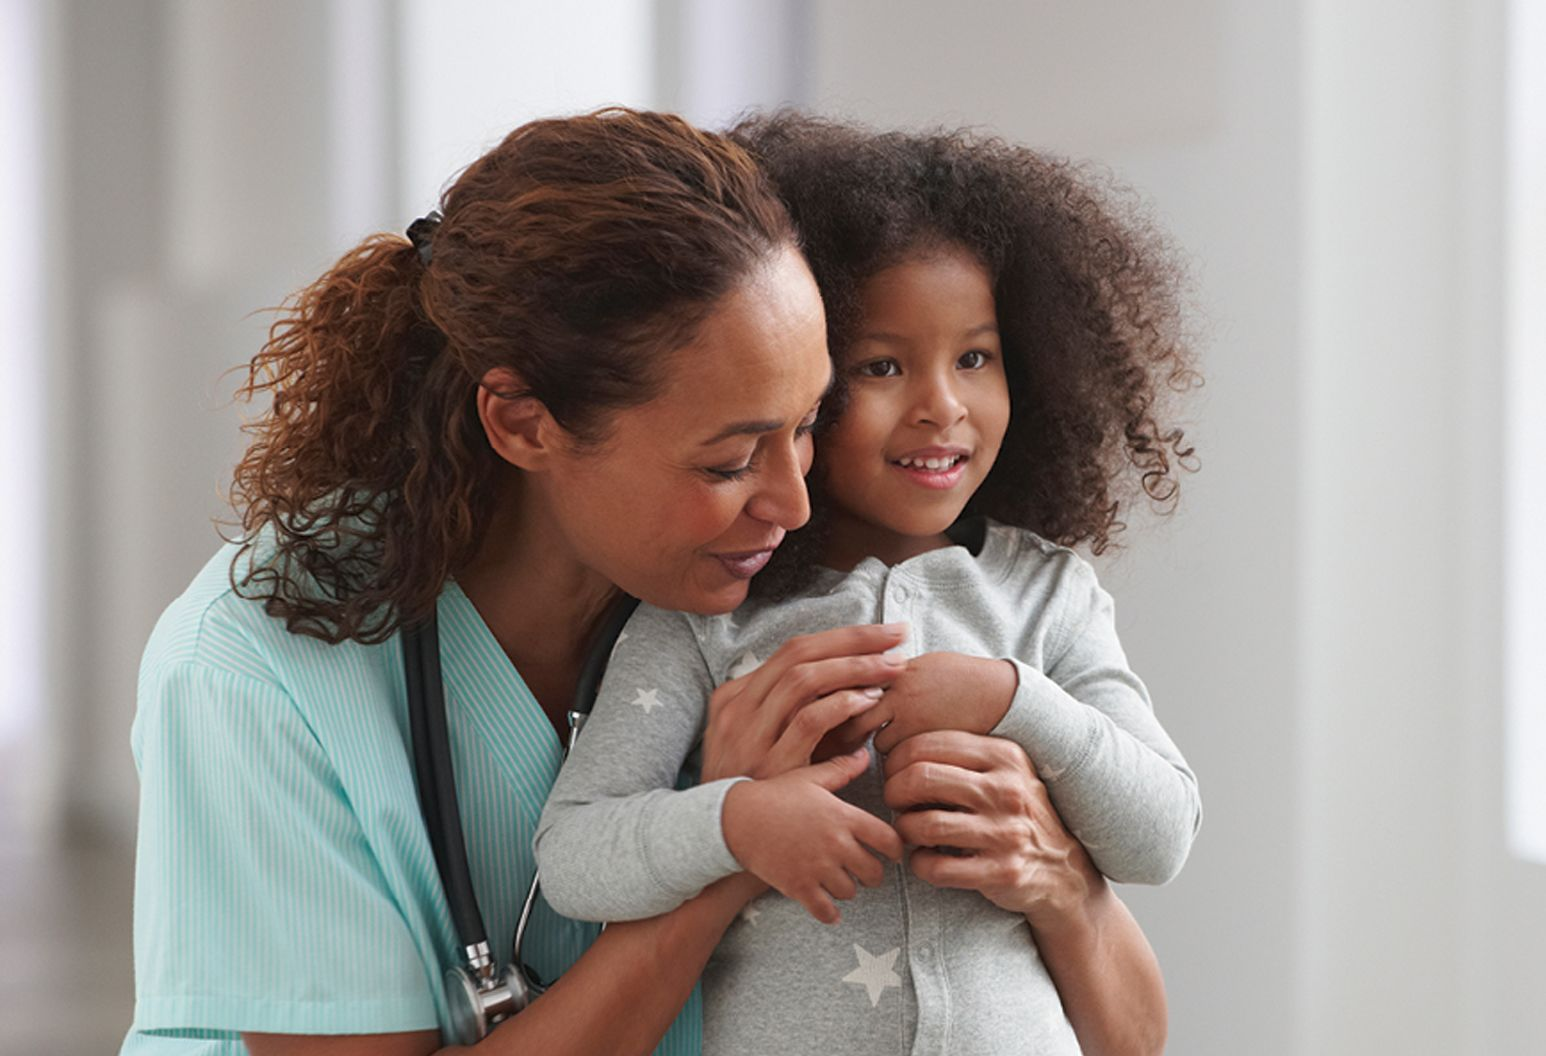 nurse hugging a small child from behind